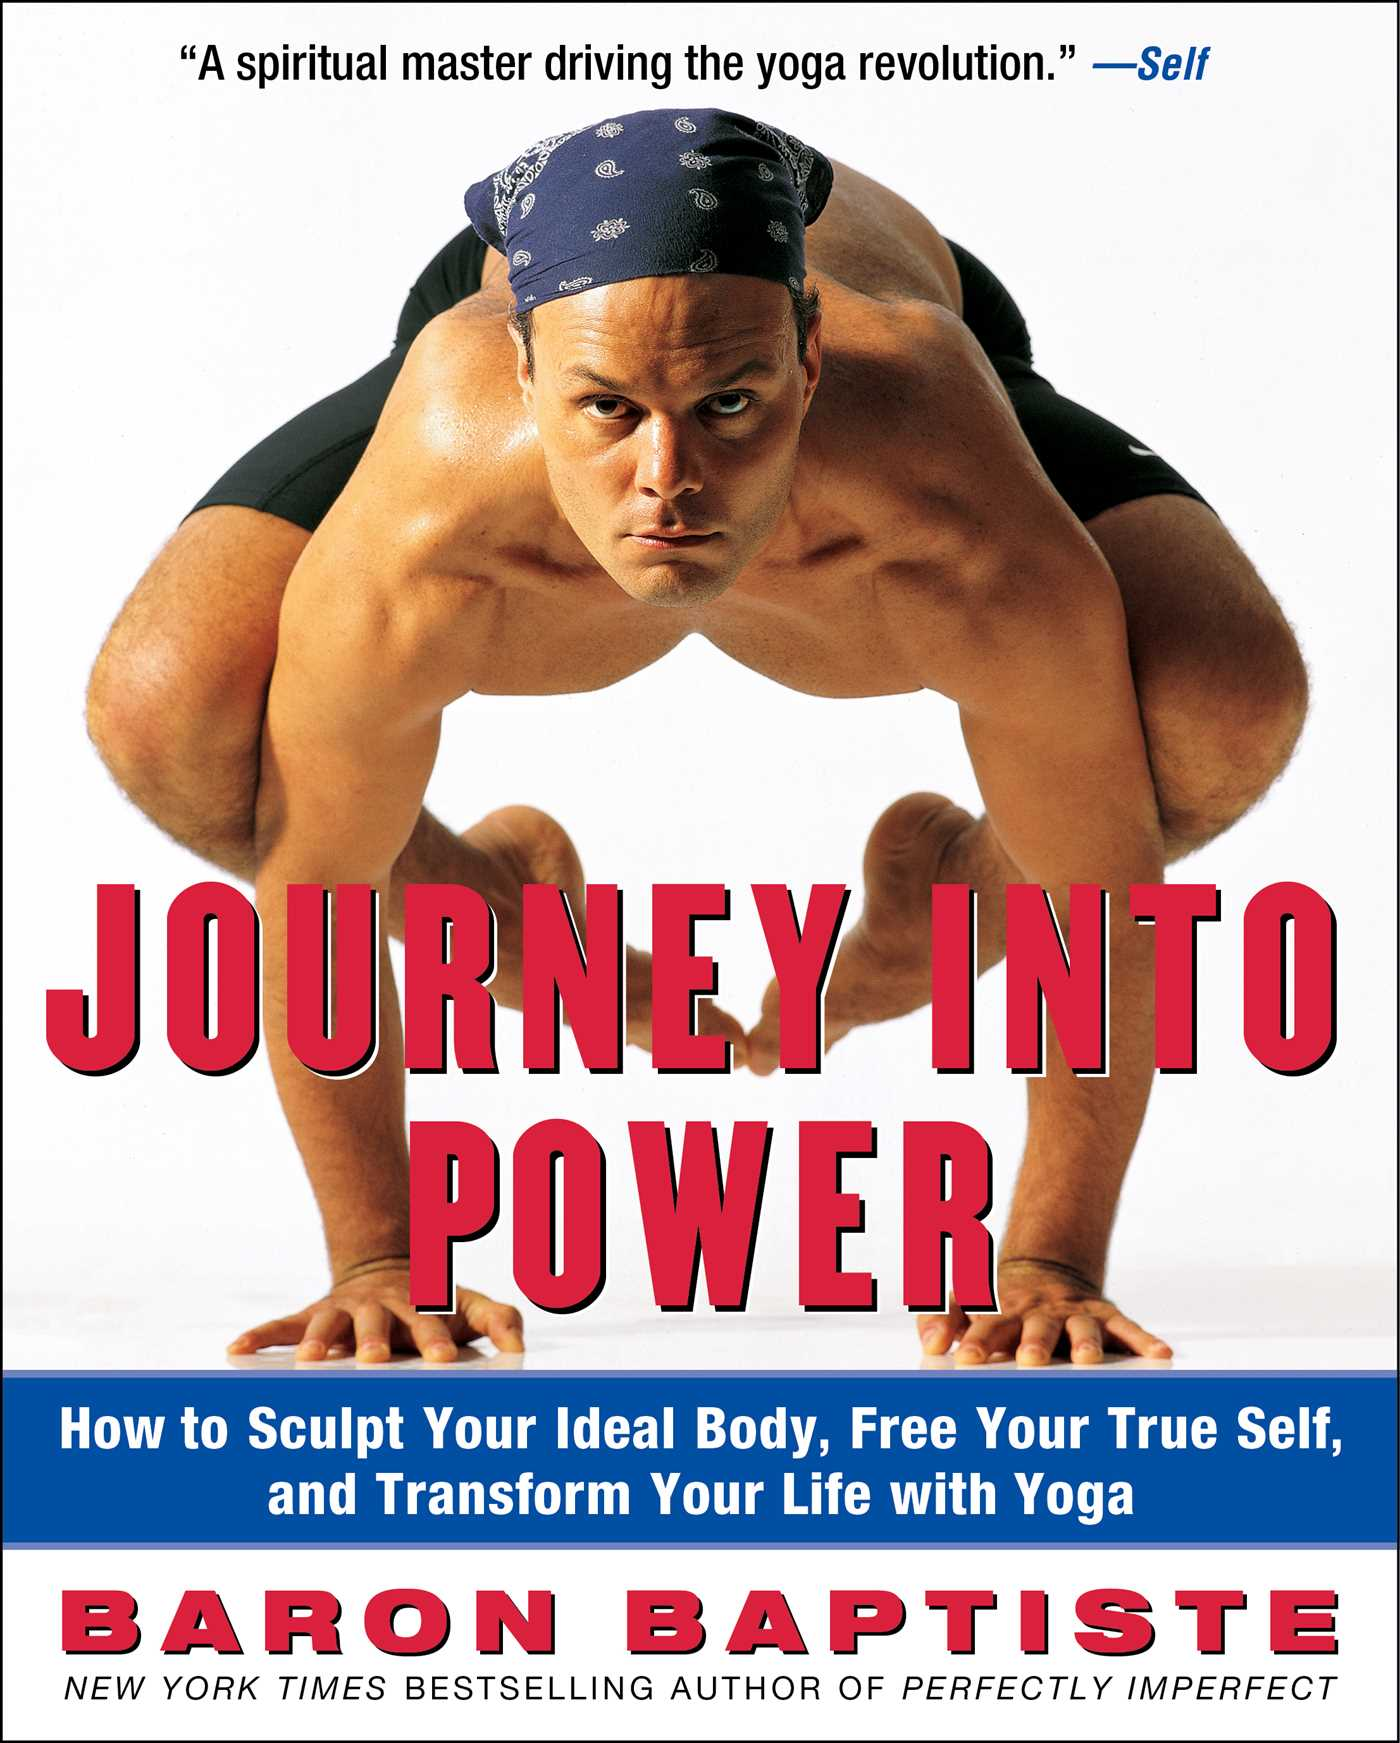 Journey-into-power-9780743227827_hr